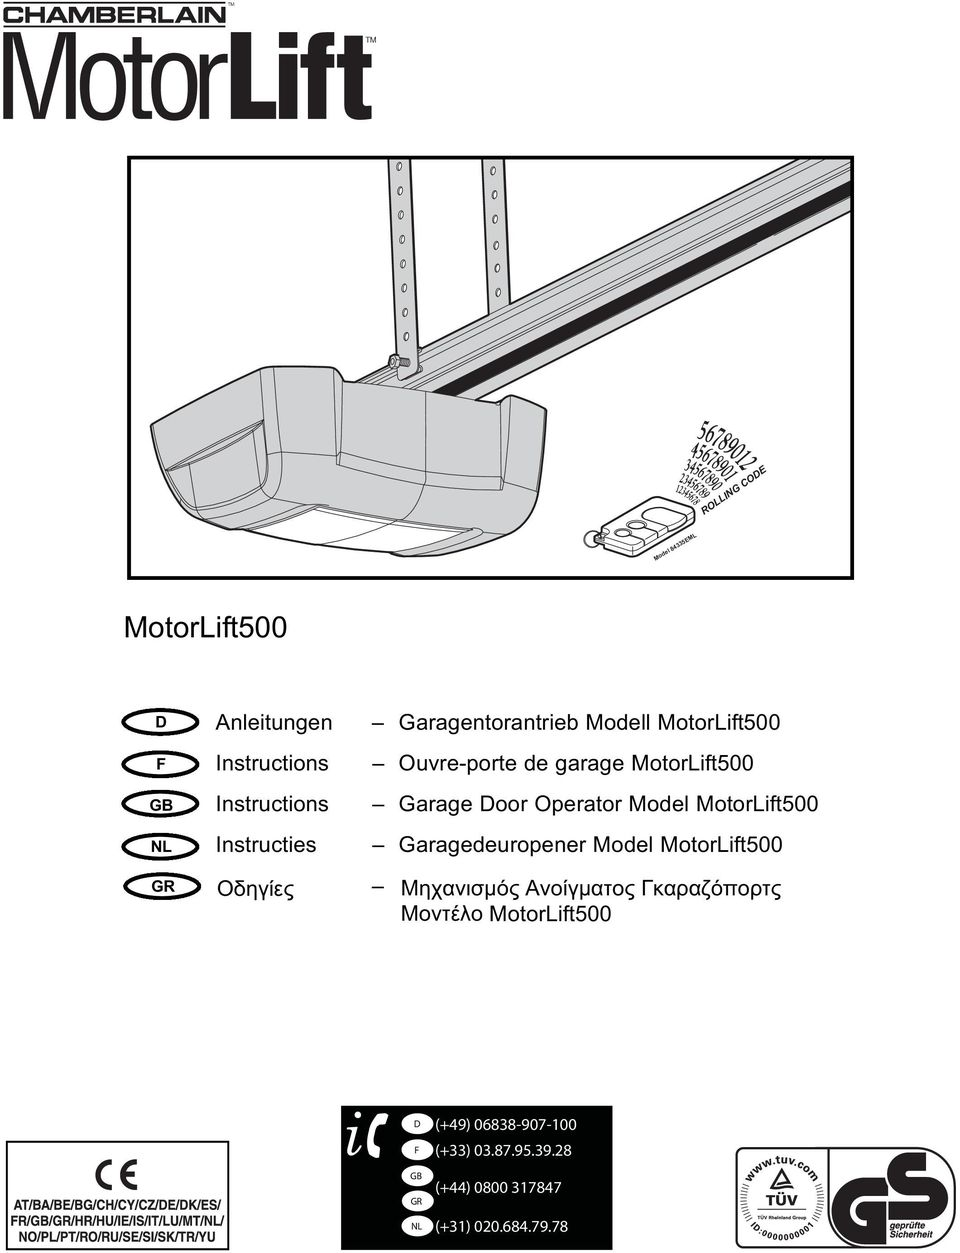 MotorLift00 Instructies Garagedeuropener Model MotorLift00 GR Οδηγίες Μηχανισμός Ανοίγματος